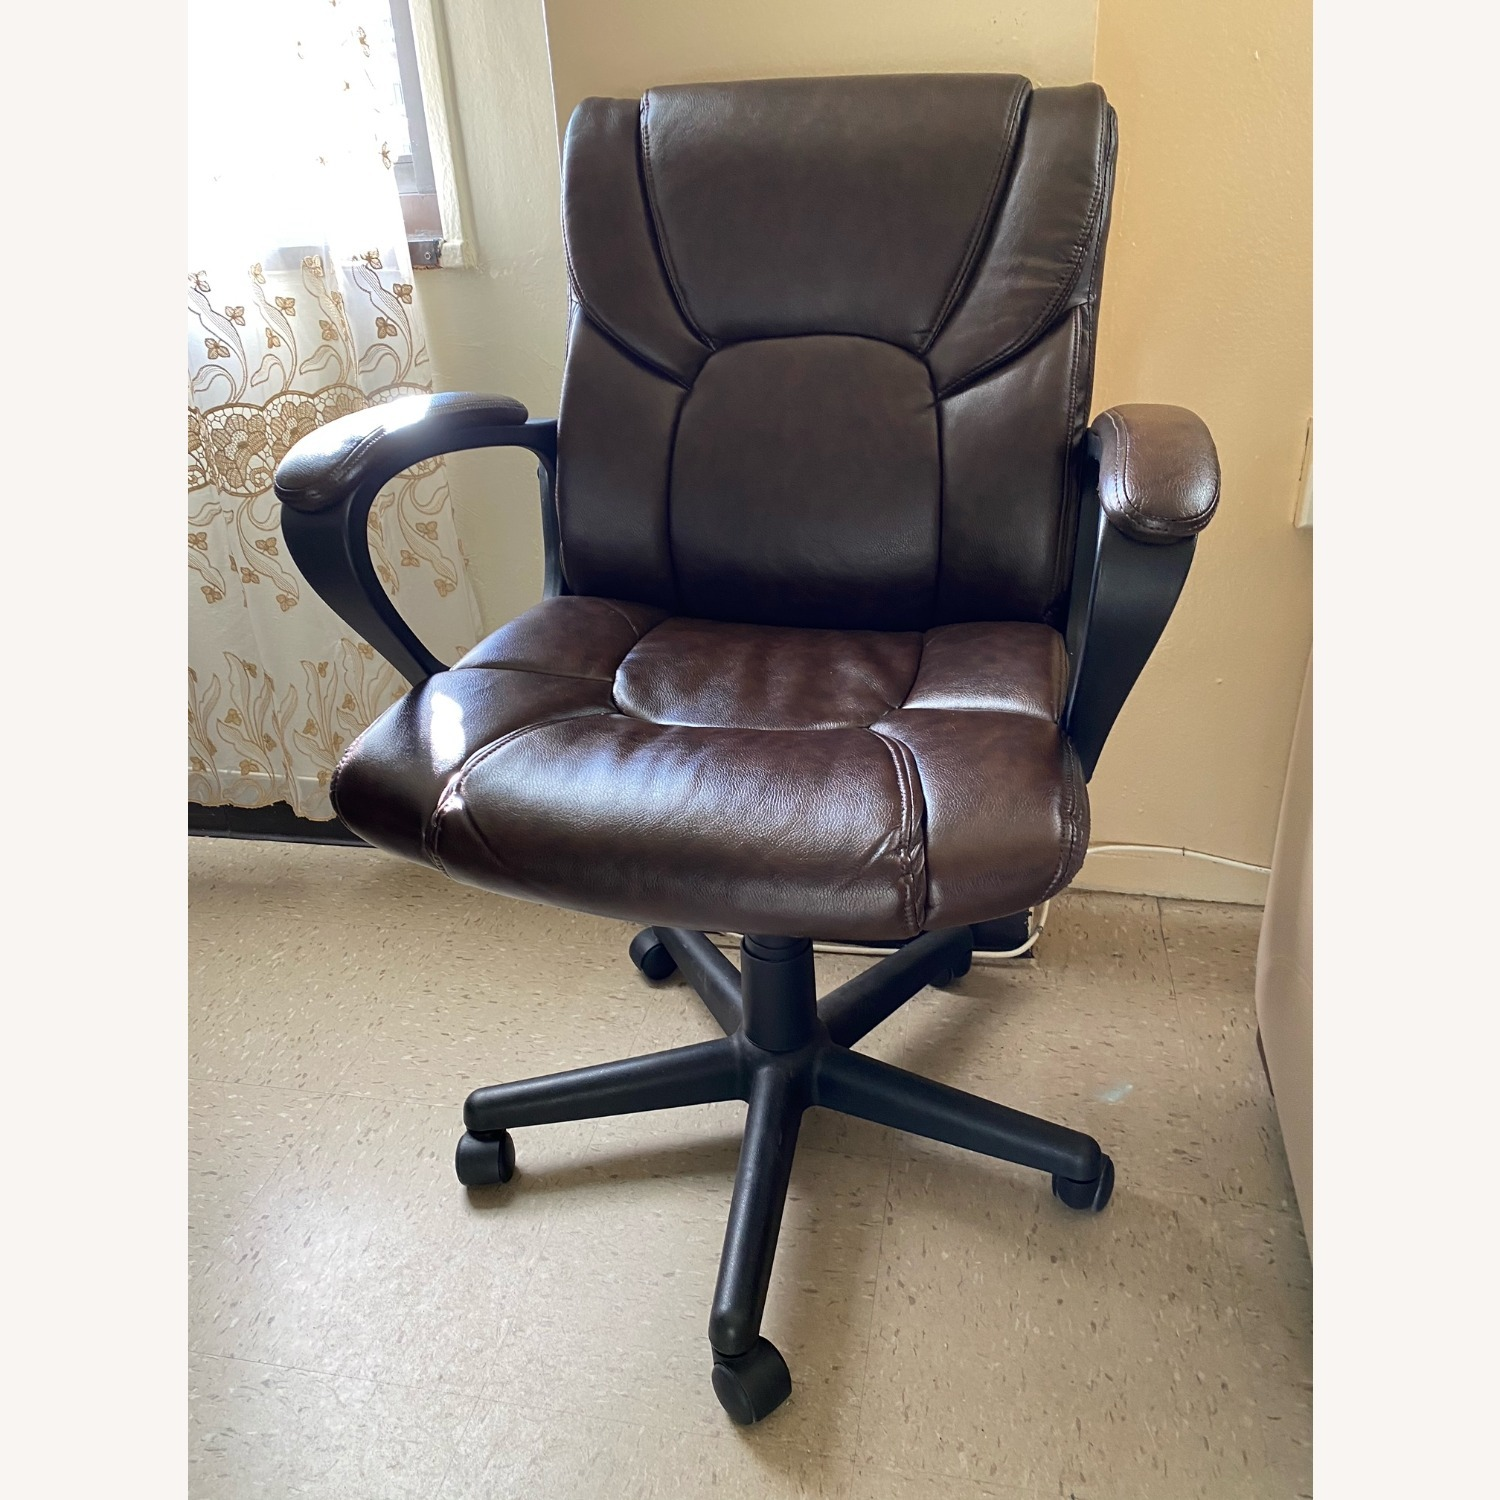 Staples Office Armchair on Wheels - image-3